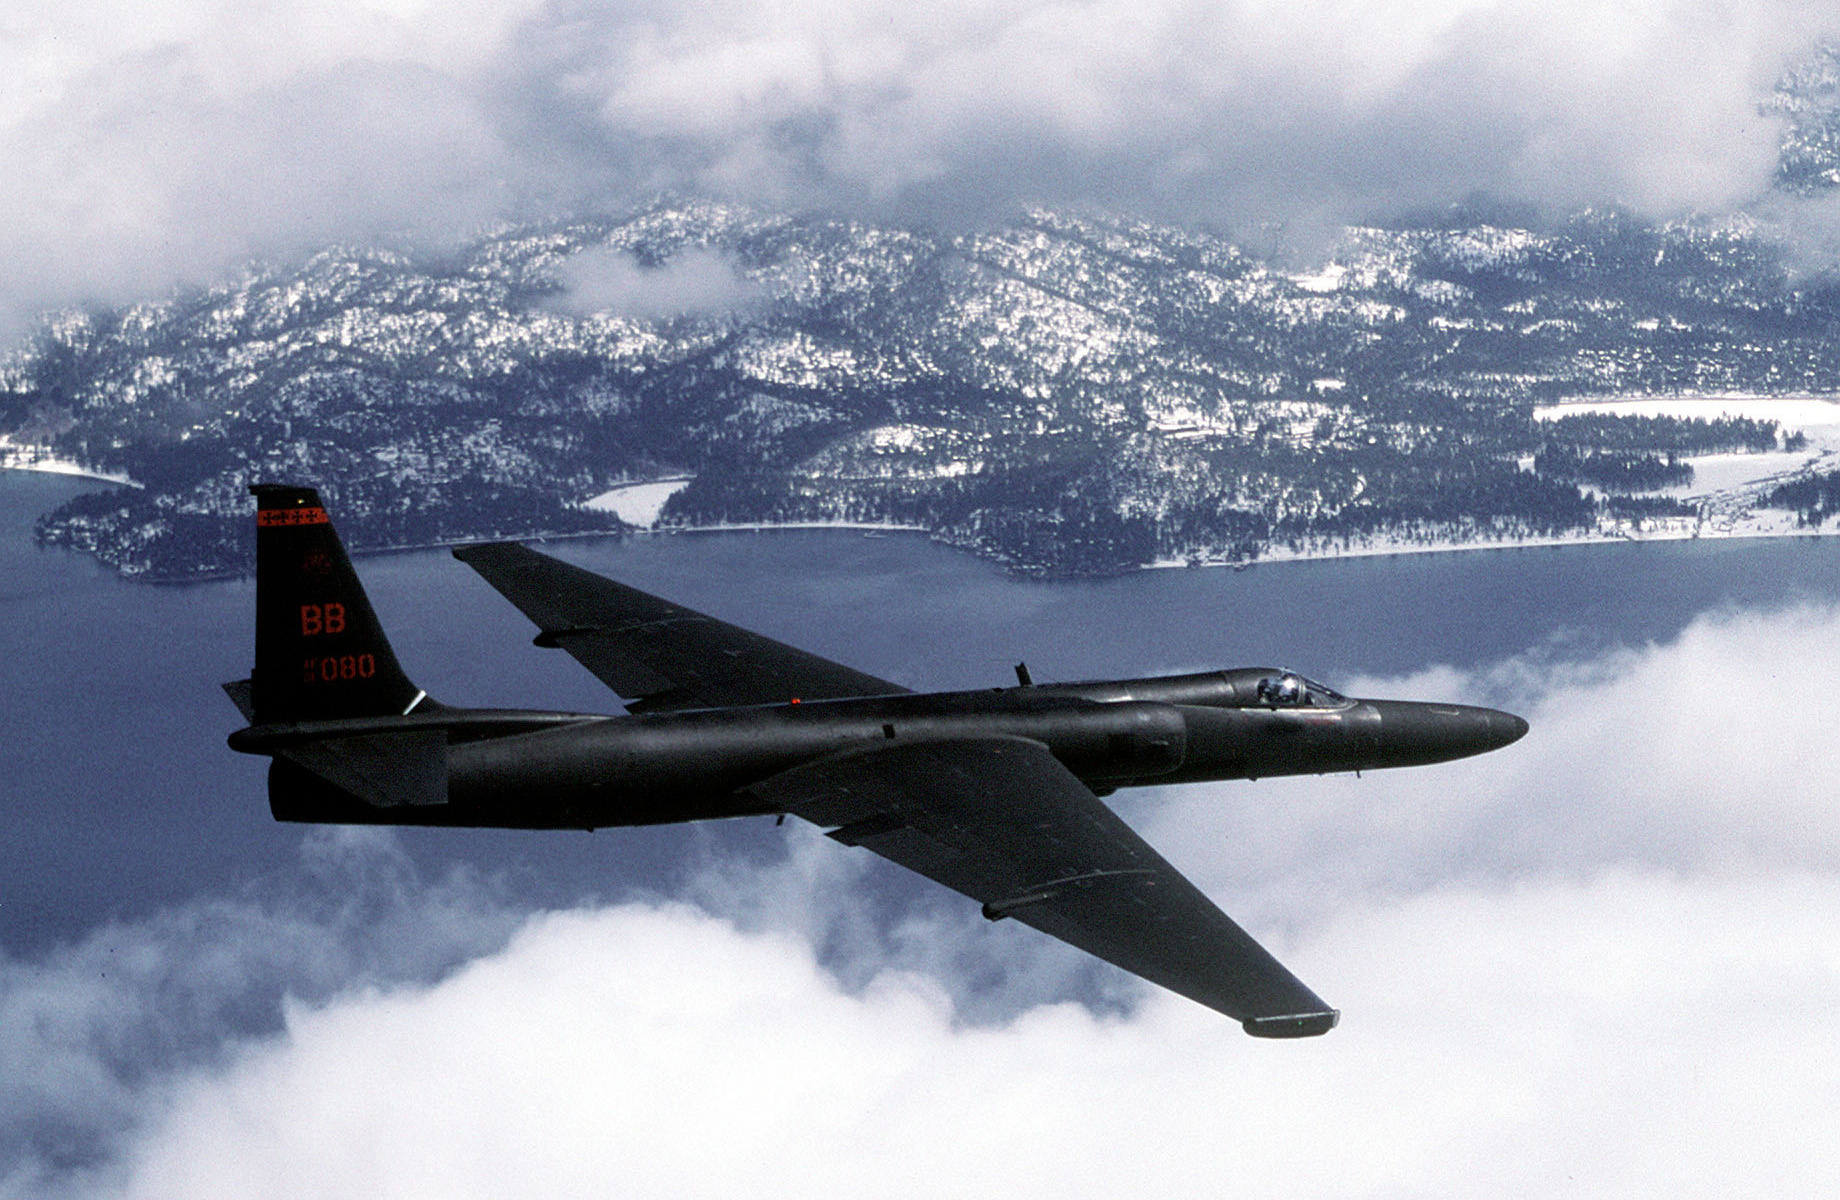 An Air Force U-2 flies a training mission. (U.S. Air Force Photo by Master Sgt. Rose Reynolds)